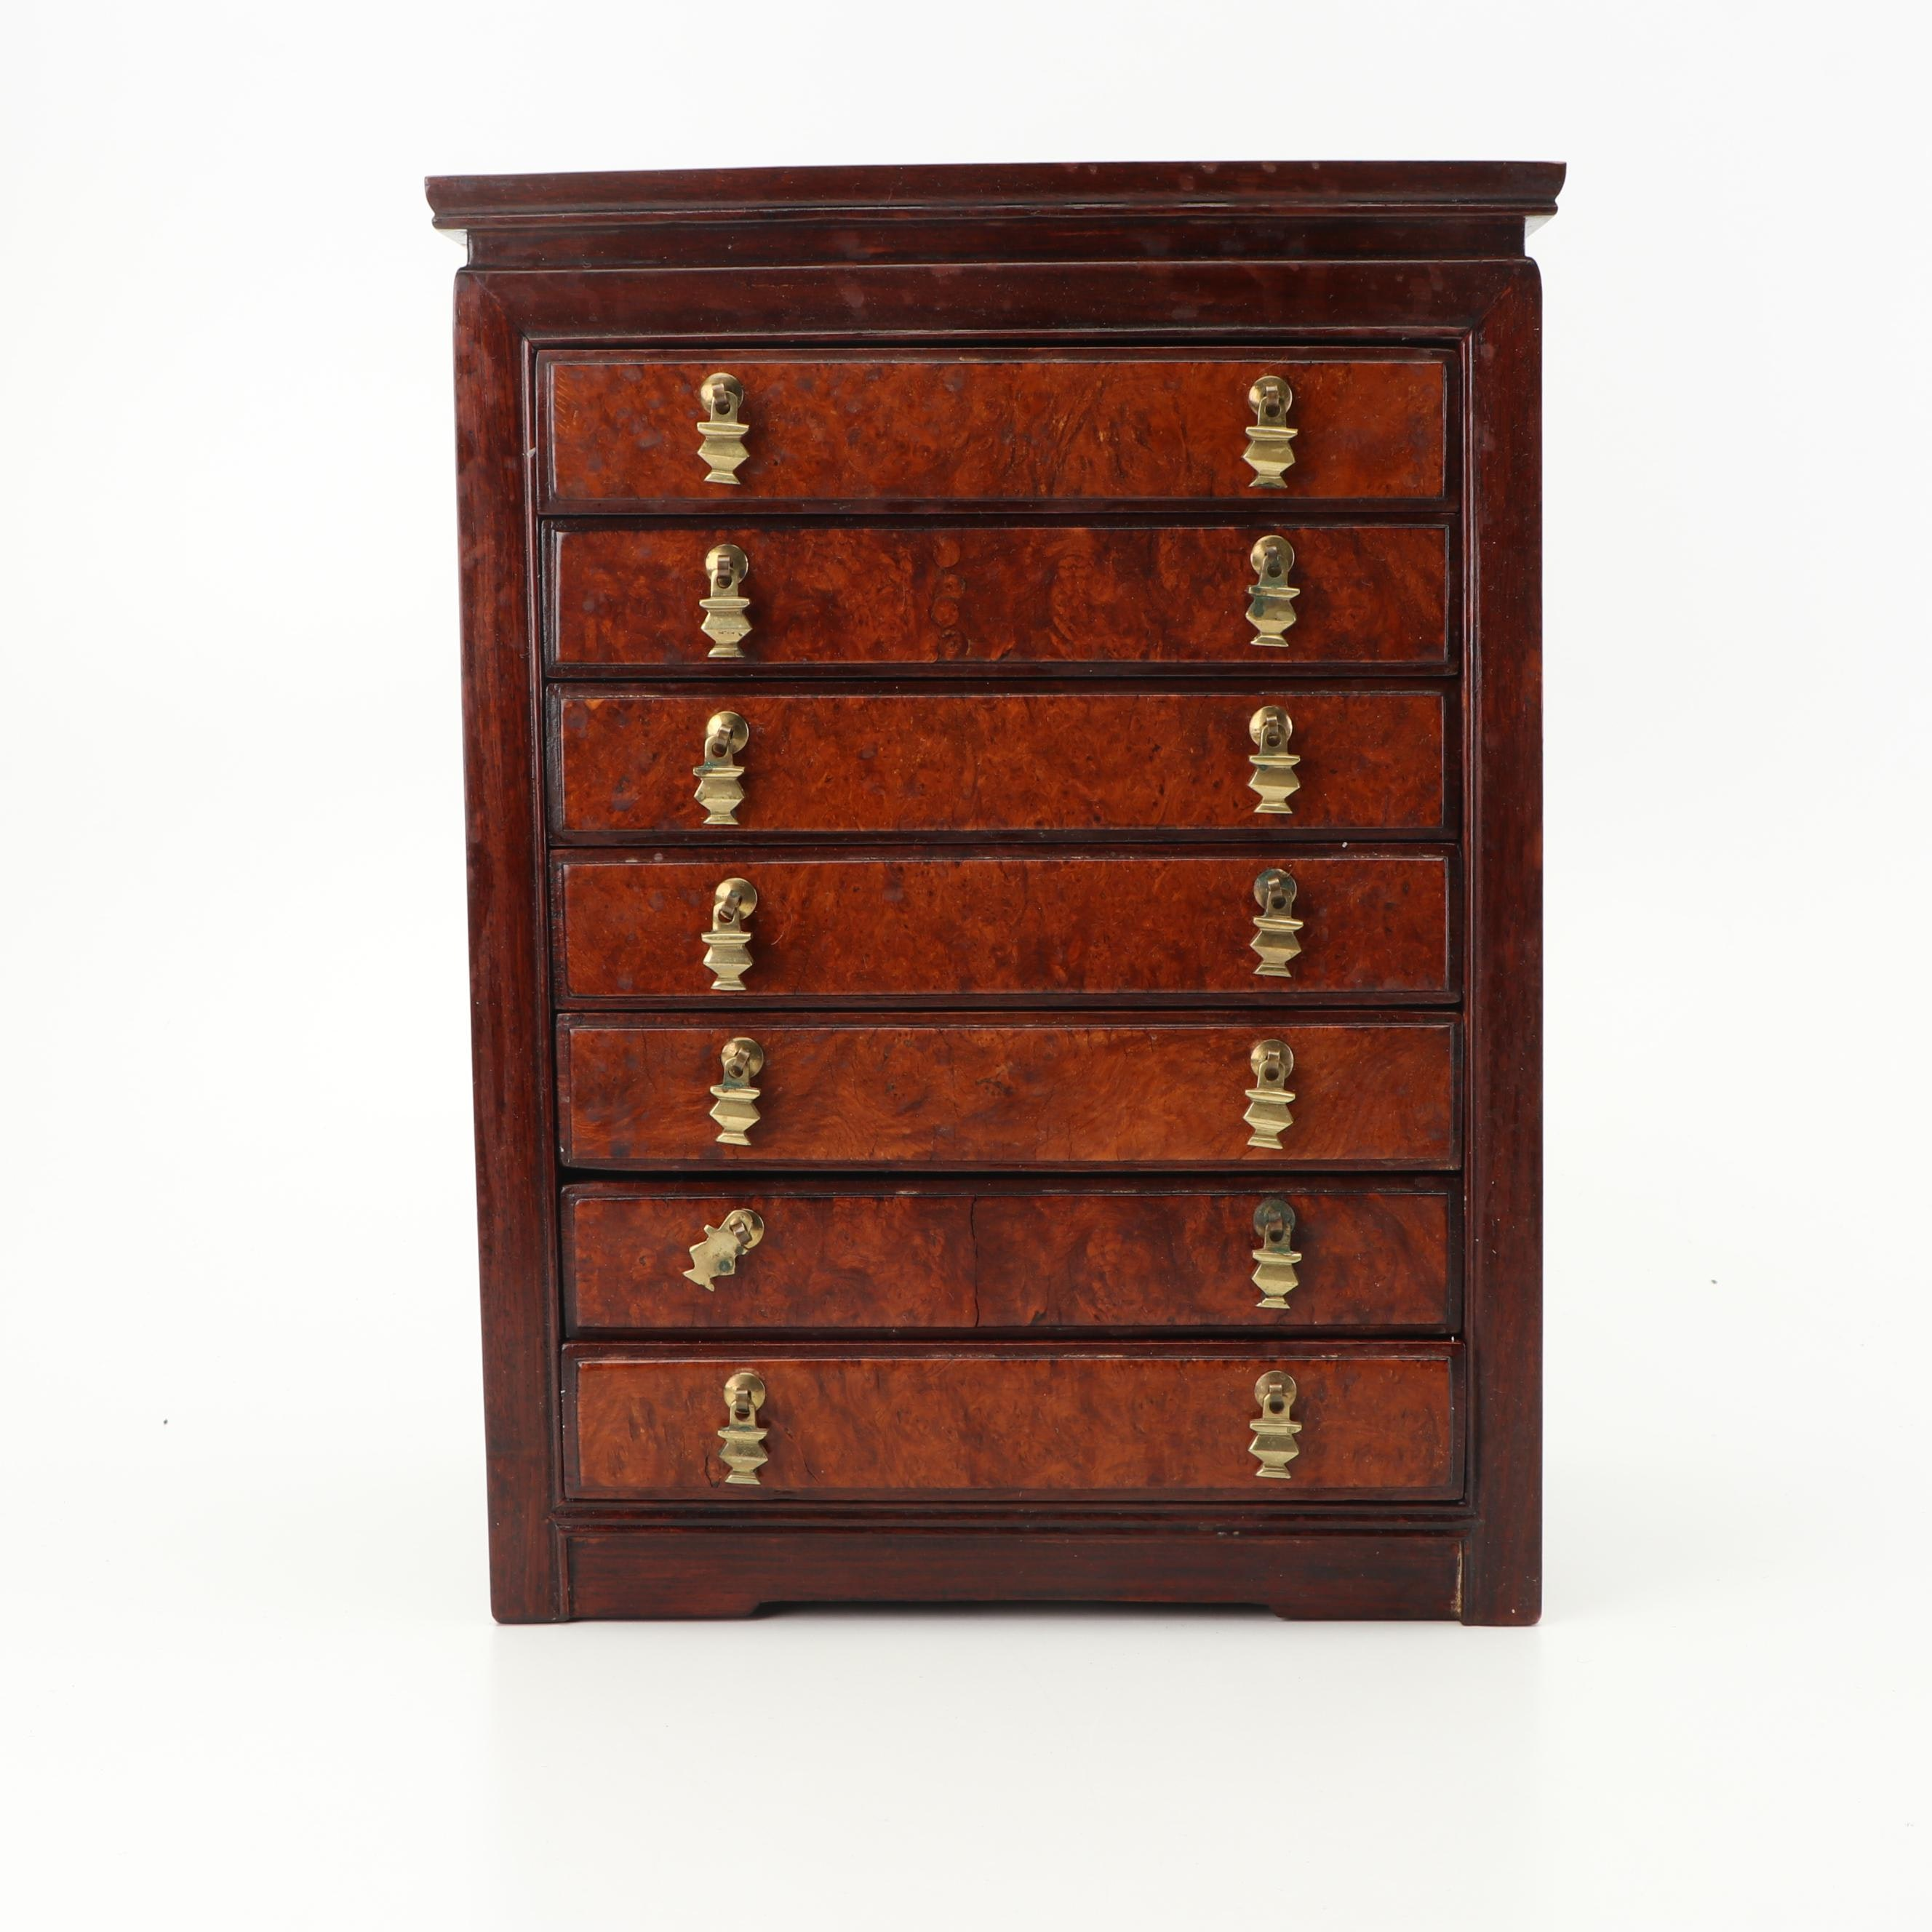 Burl Front Jewelry Chest of Drawers with Brass Pulls, Mid-Late 20th Century